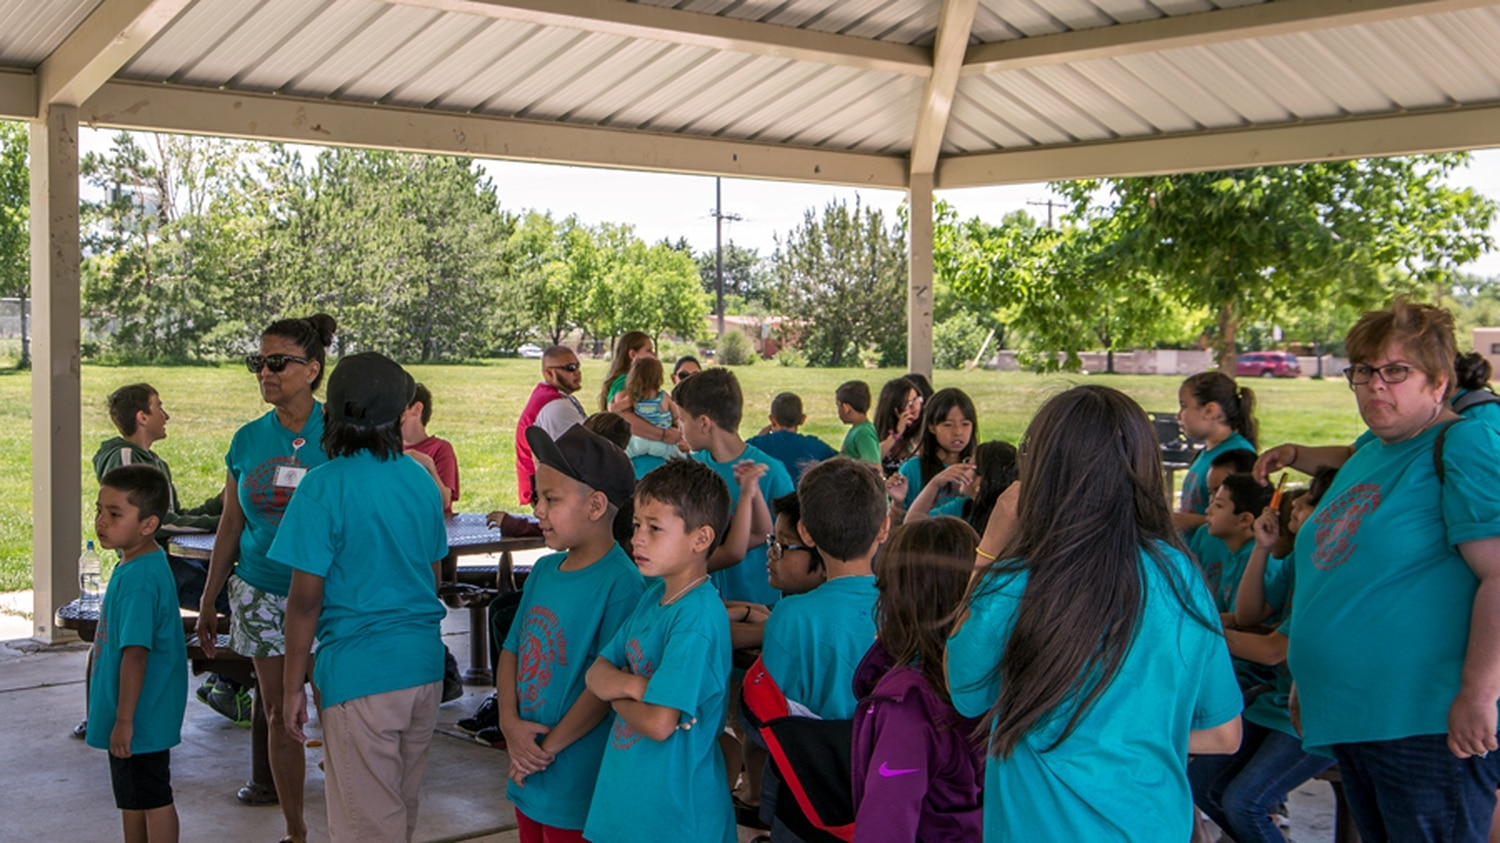 Students from the Kha'p'o Community School summer school program get free lunch during Santa Fe field trip.